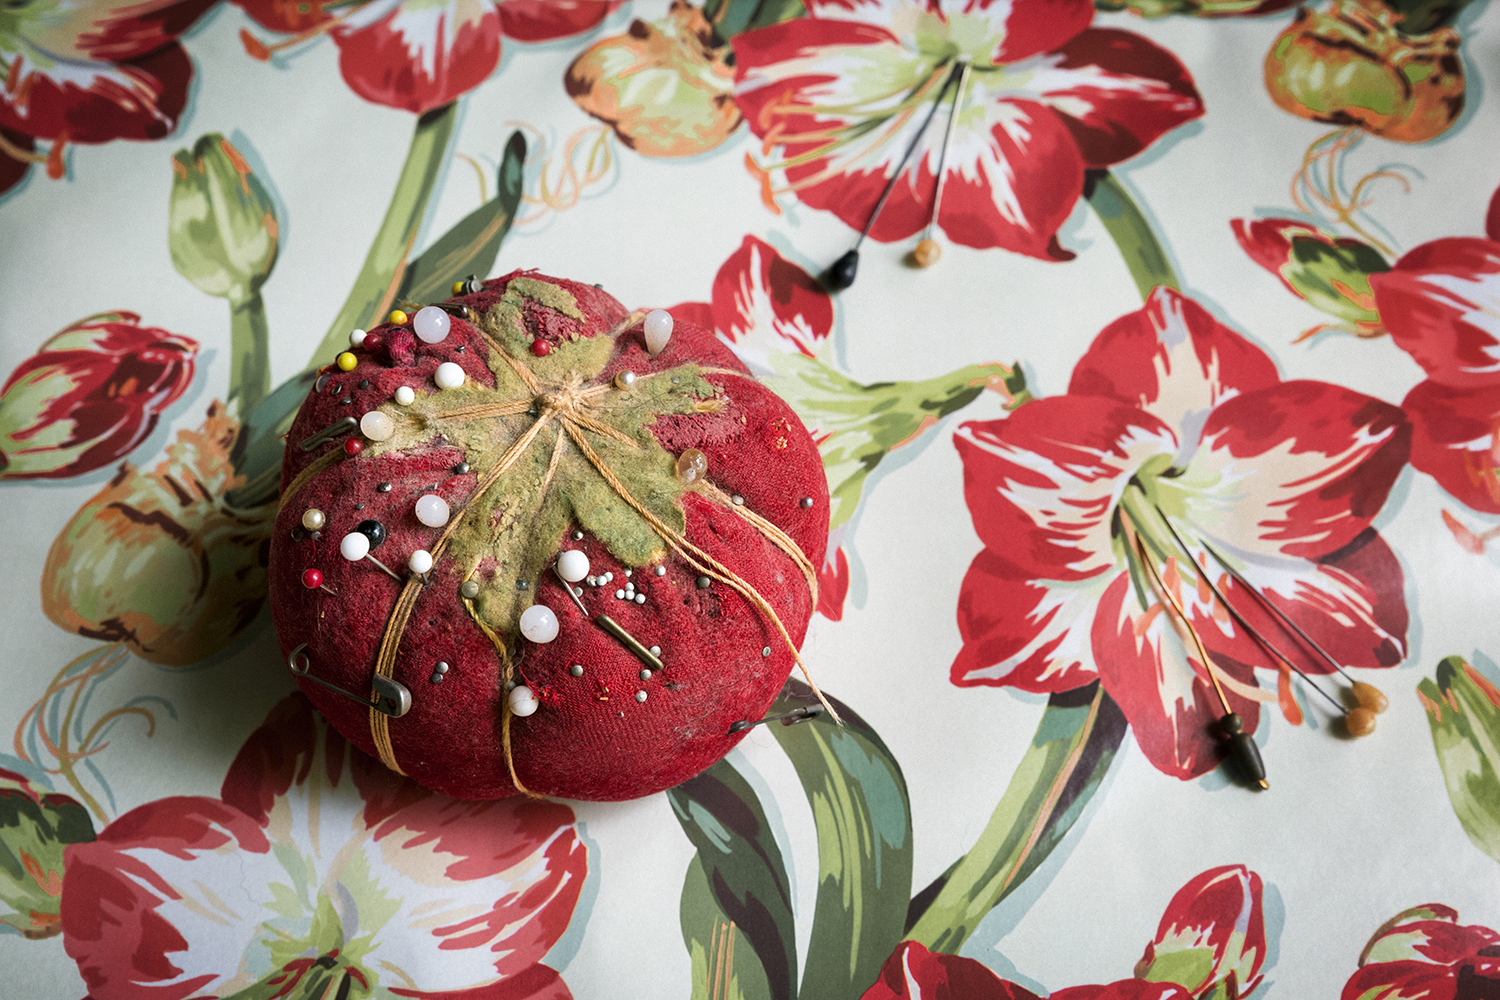 the pincushion on vintage wrapping paper with pins as stamens from the amaryllis lily